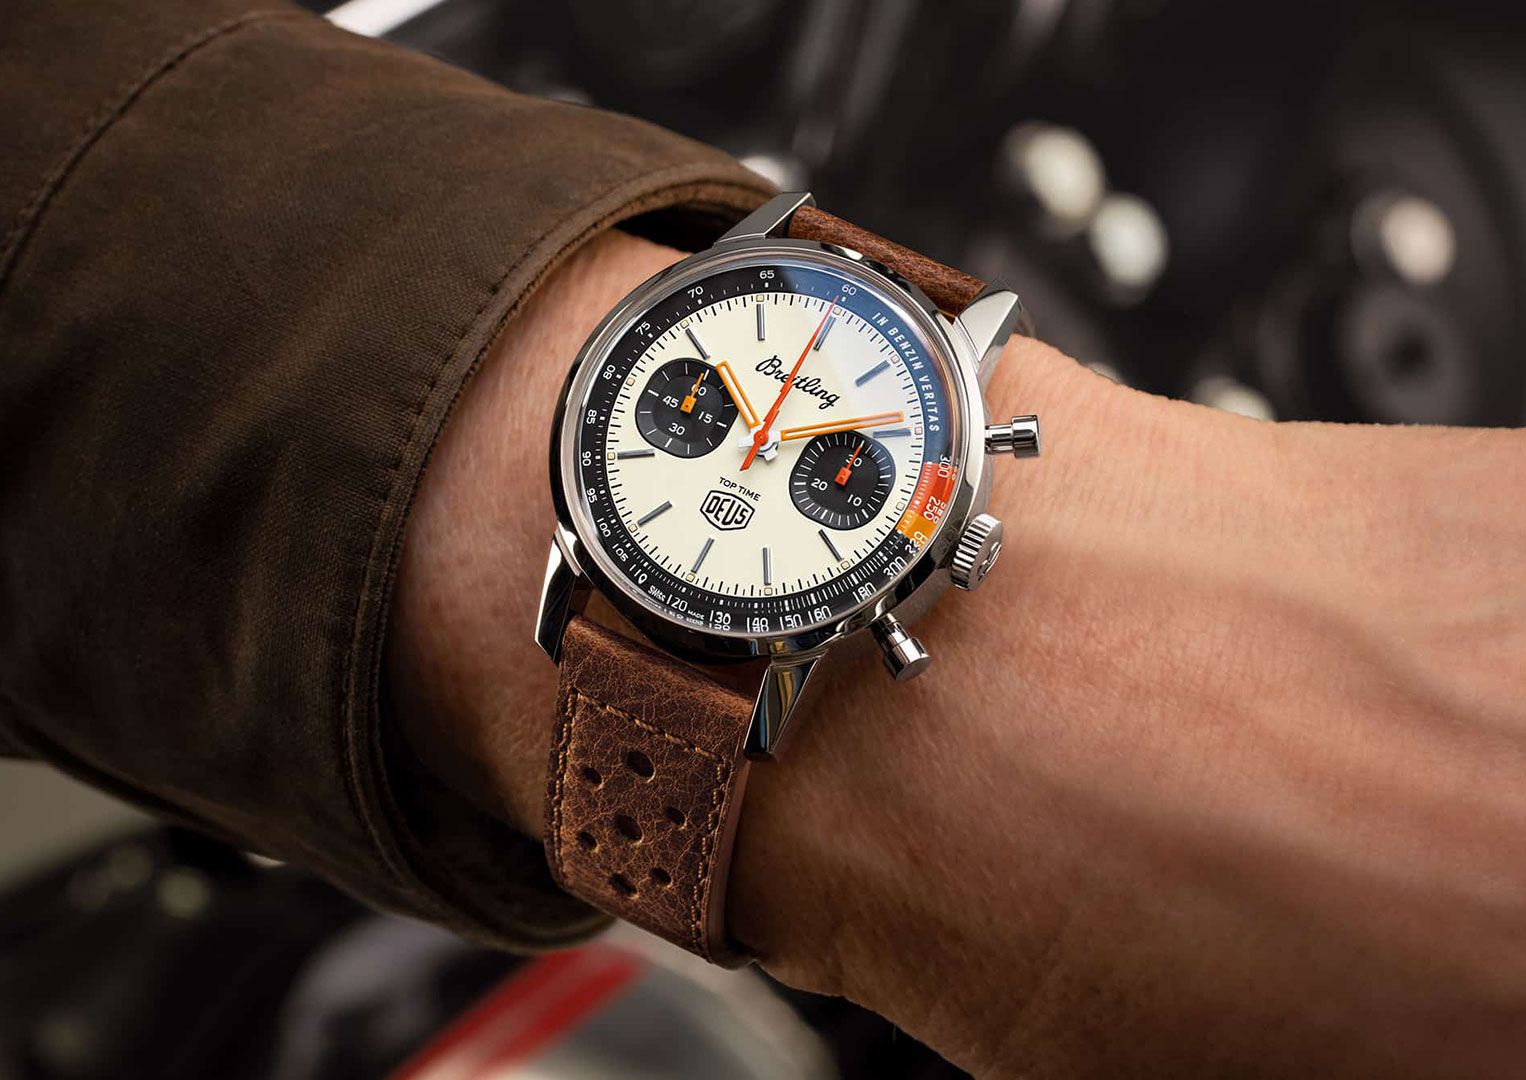 The Breitling Top Time was re-introduced to the market in 2020